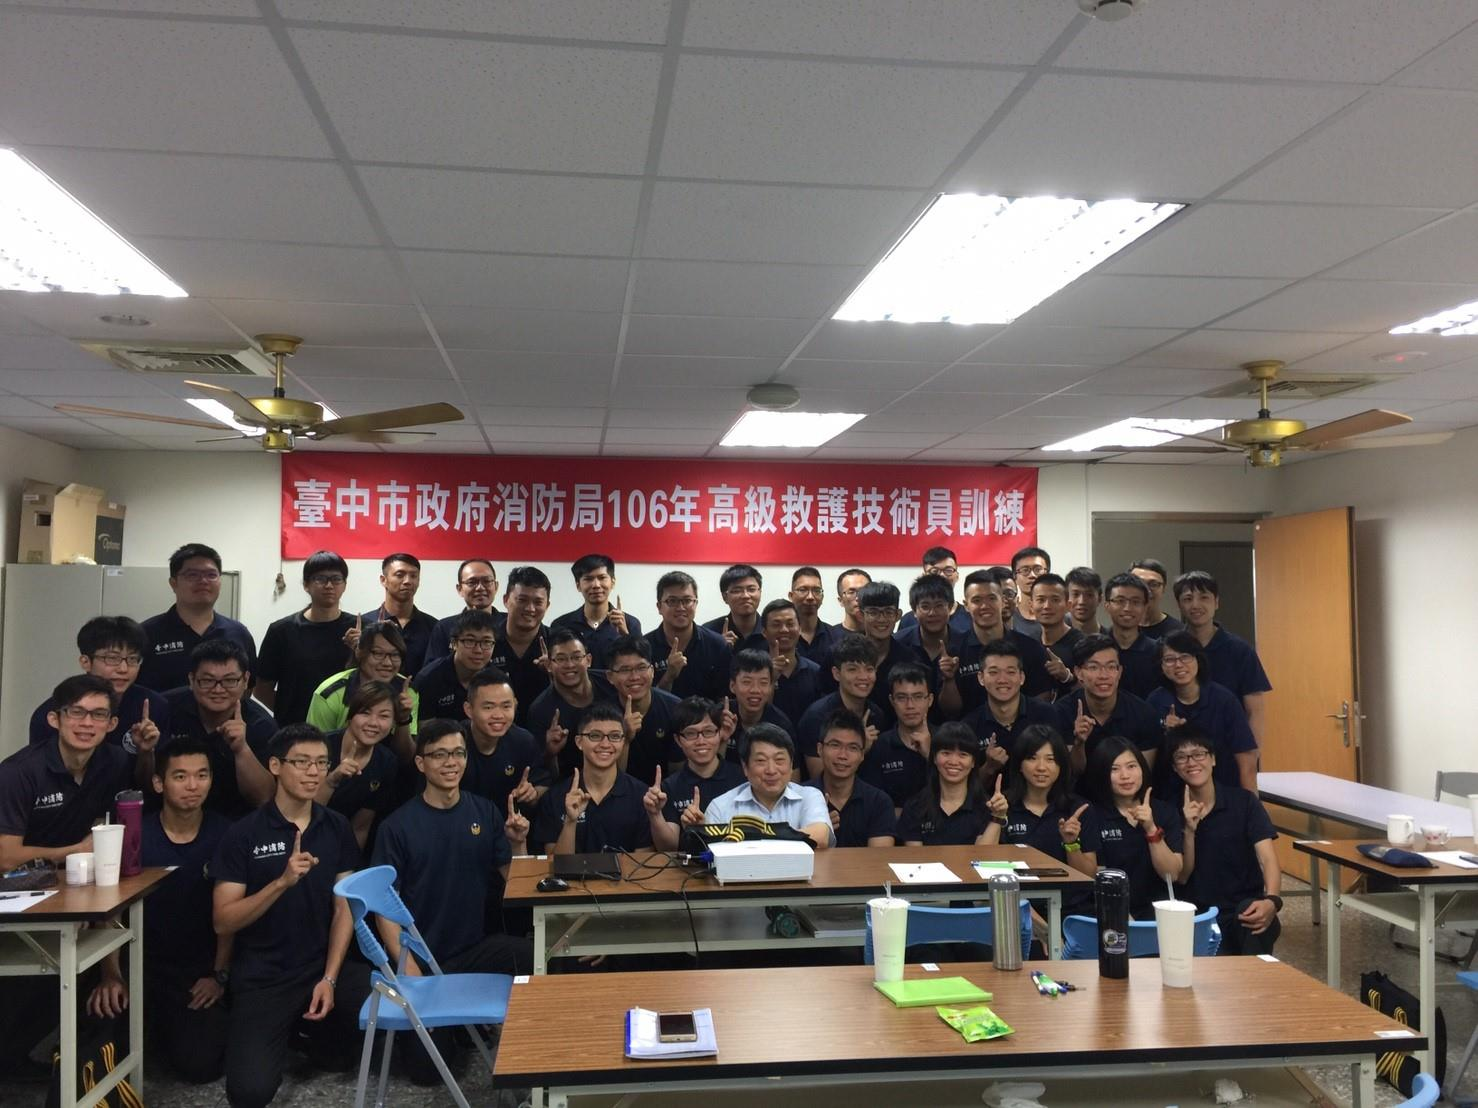 Fire Bureau commences EMT Paramedic (EMTP) training in response to 2018 world flora expo